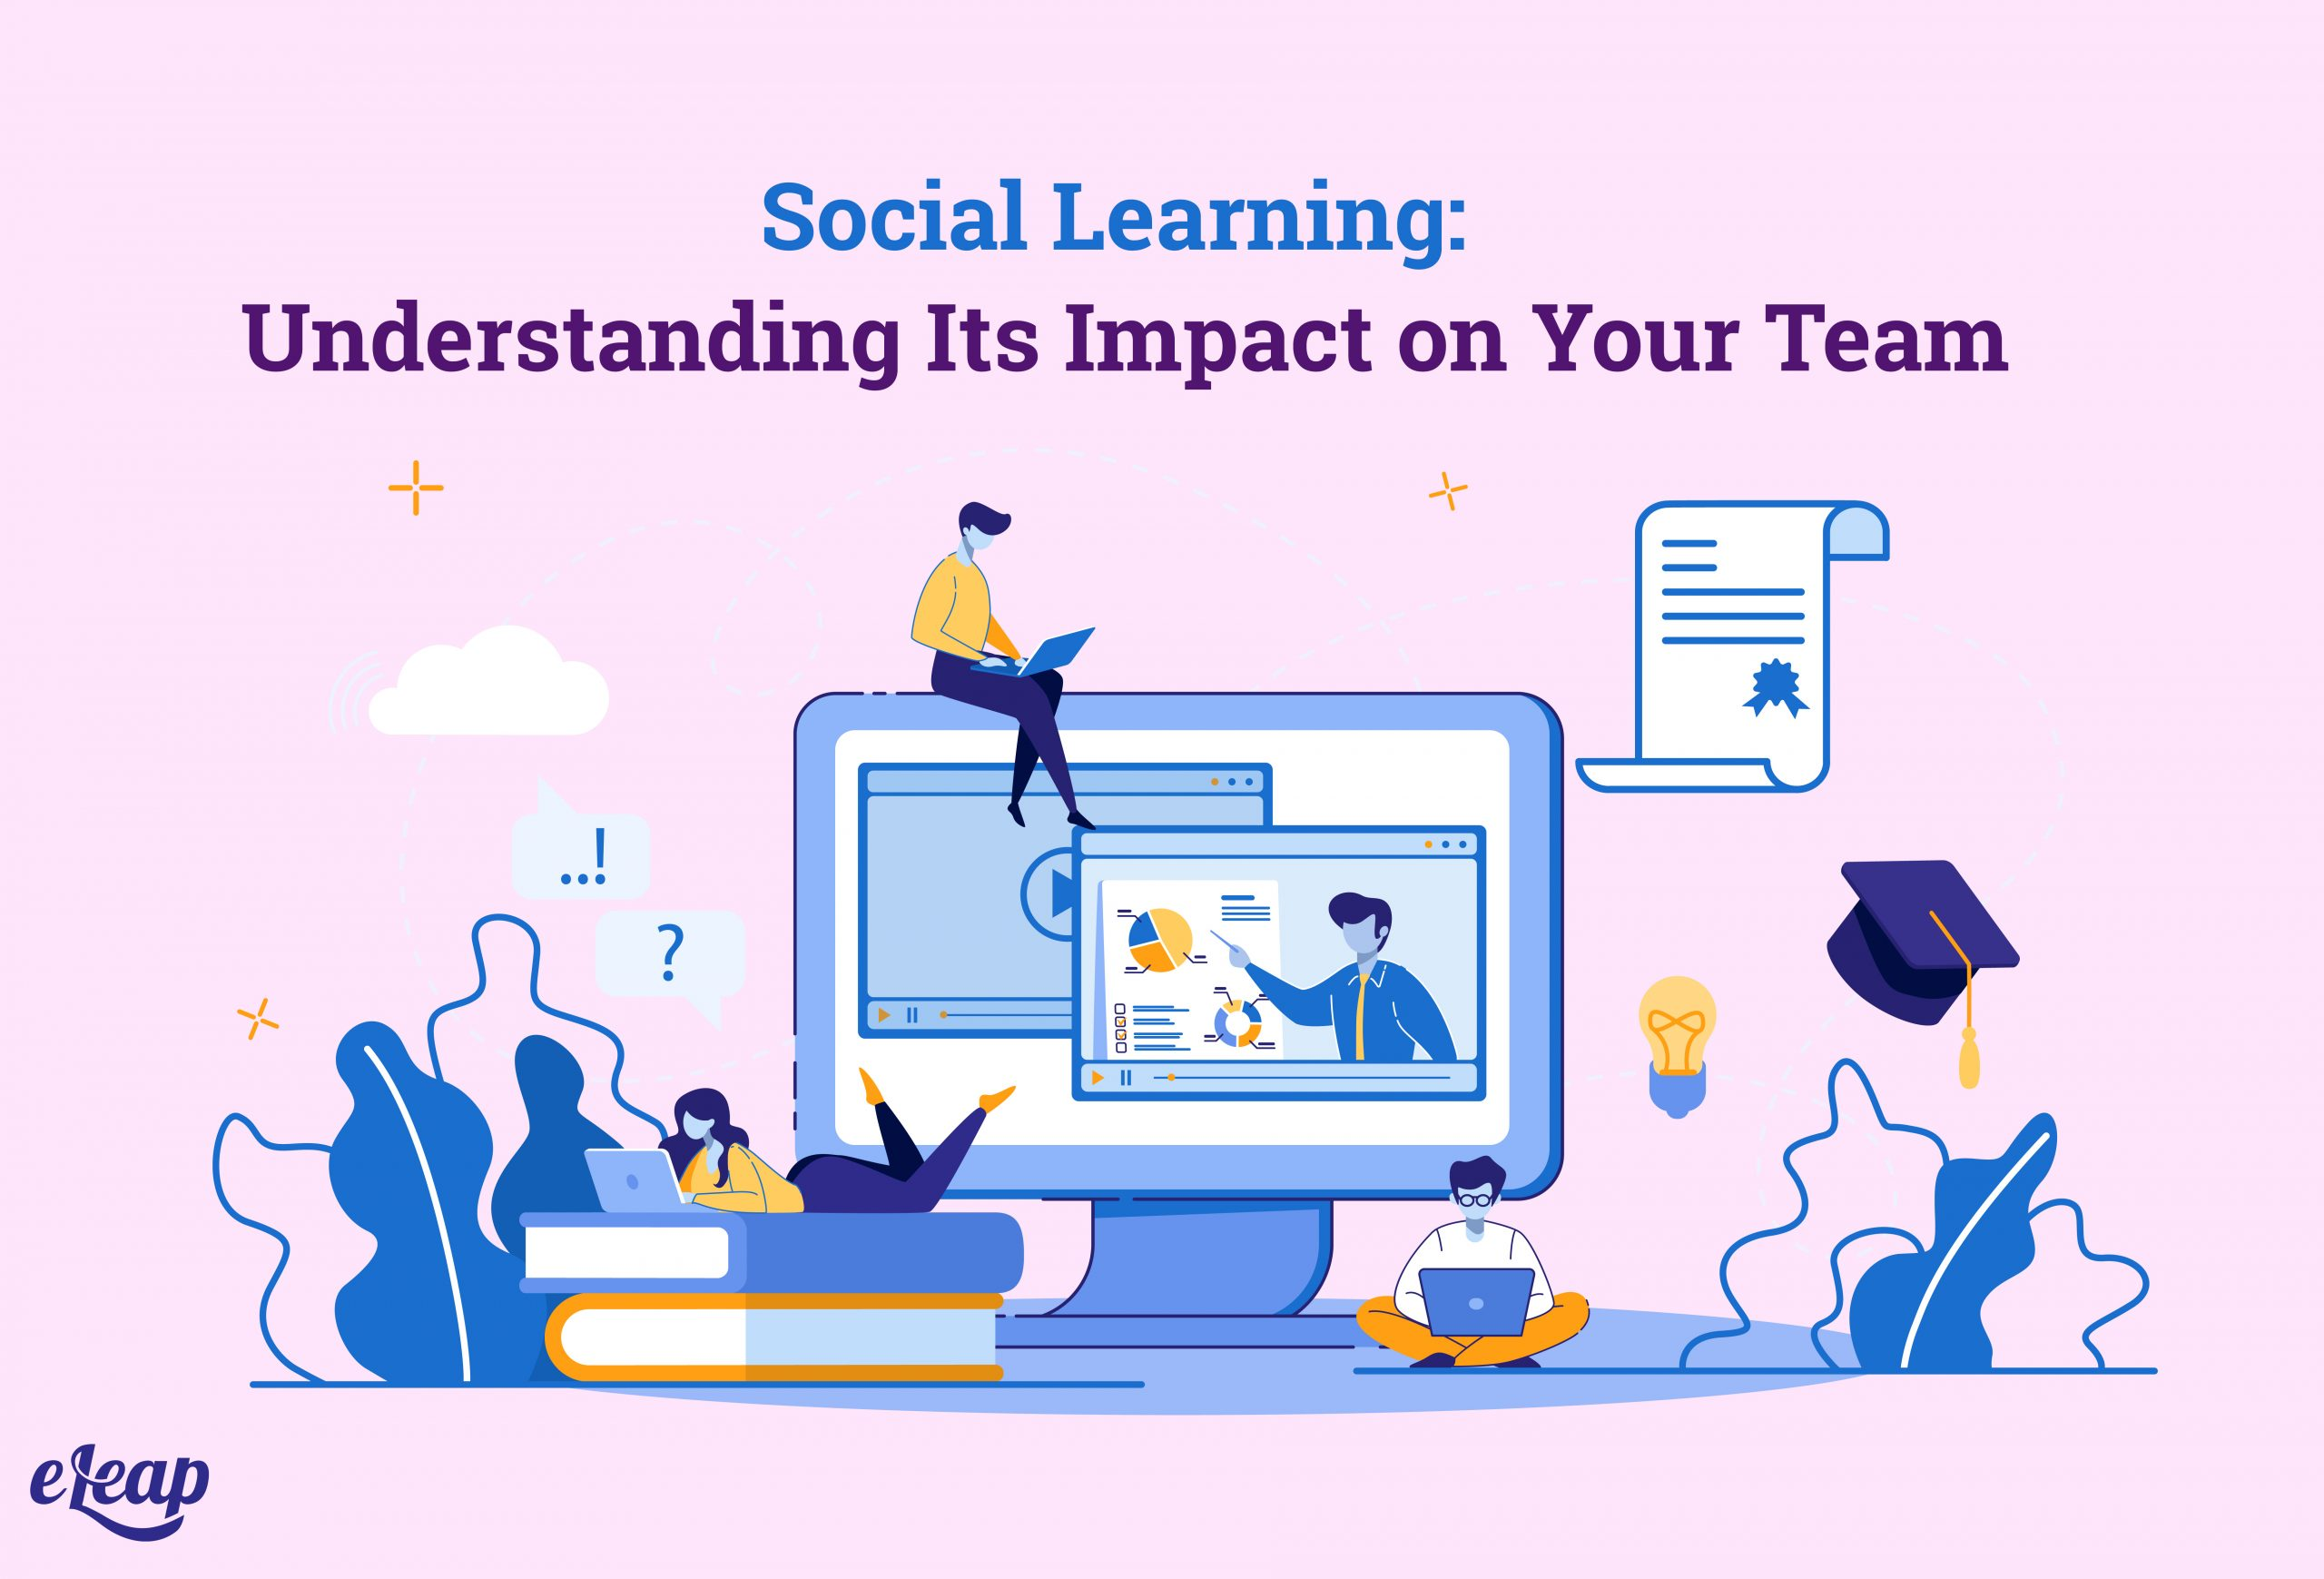 Social Learning: Understanding Its Impact on Your Team